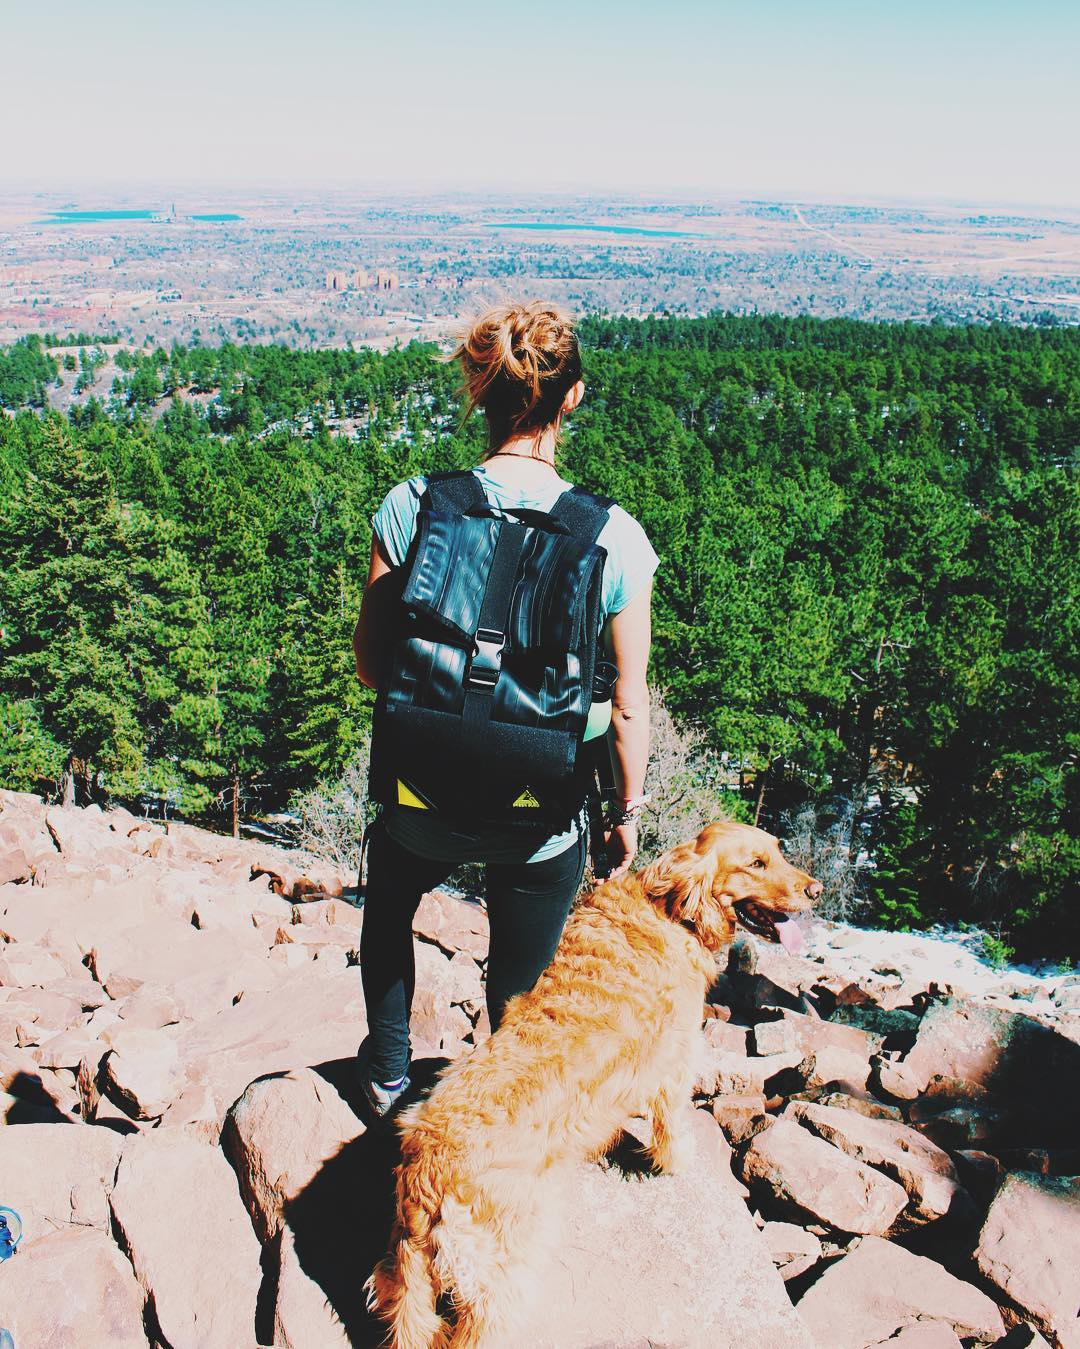 TGIF! What are your adventure plans this weekend? #exploremore #upgradetoupcycled #madeinusa #colorado #getoutside